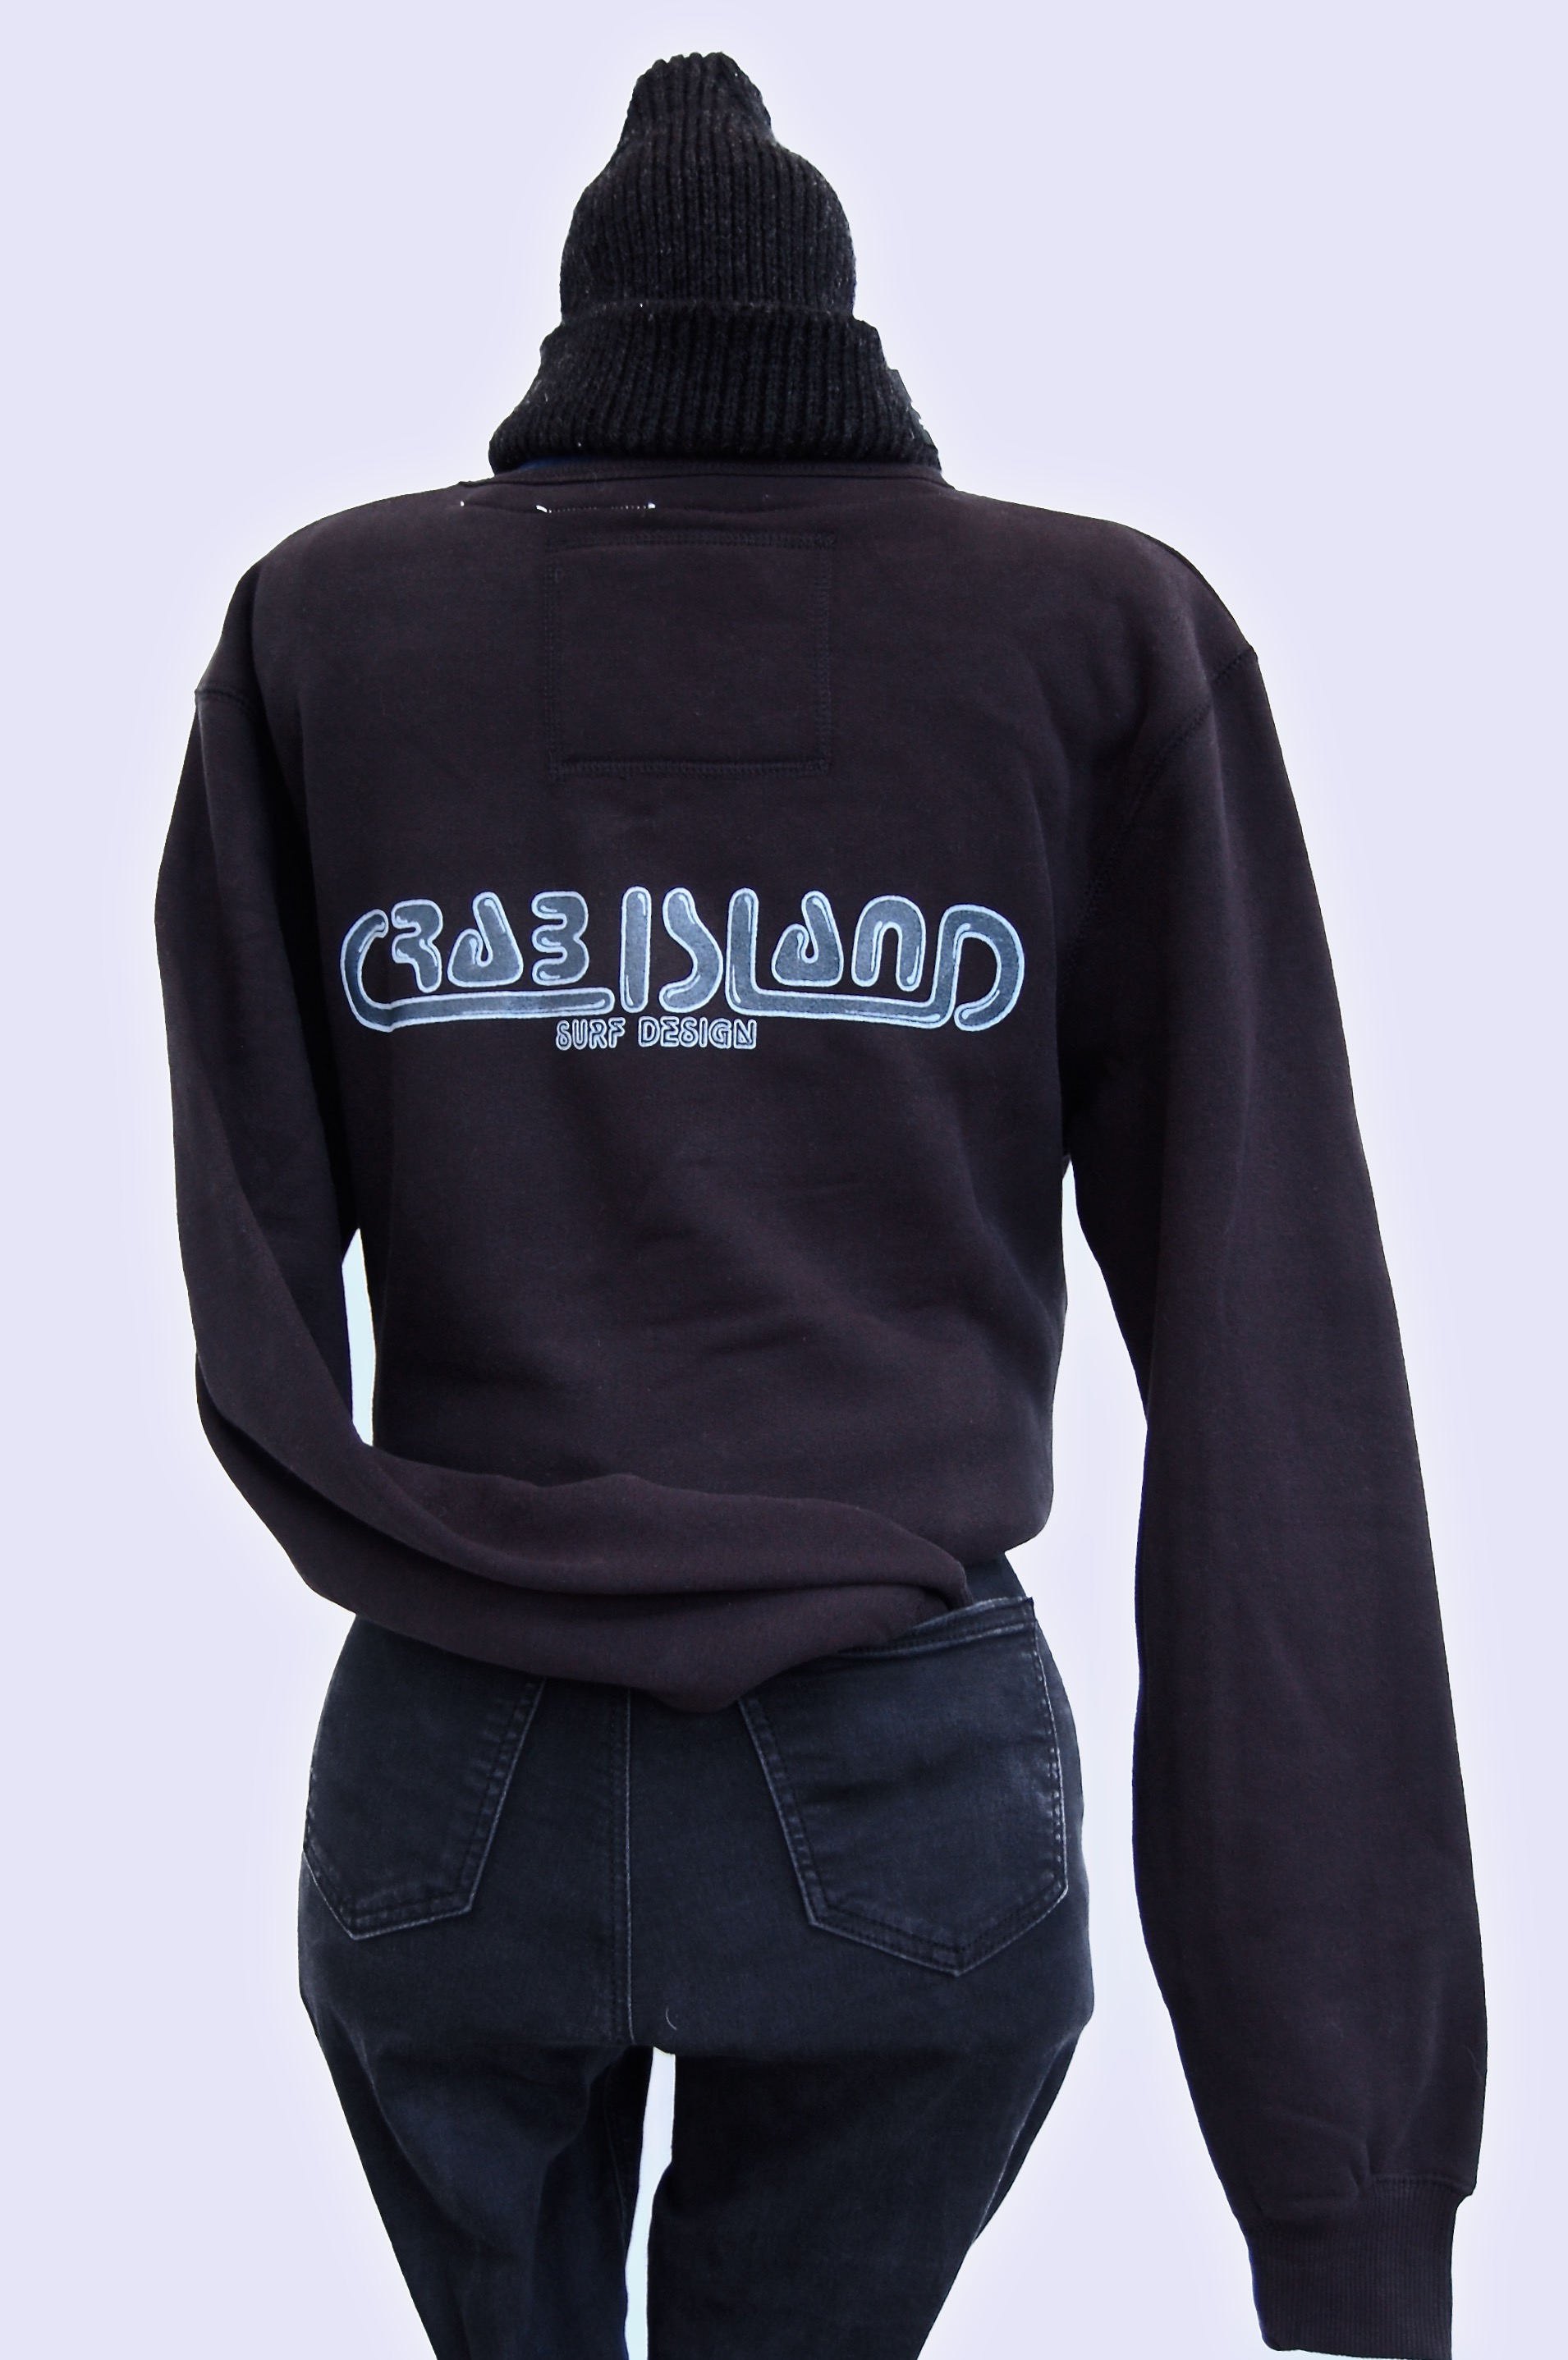 Black jumper with Crab Island Surf Design logo